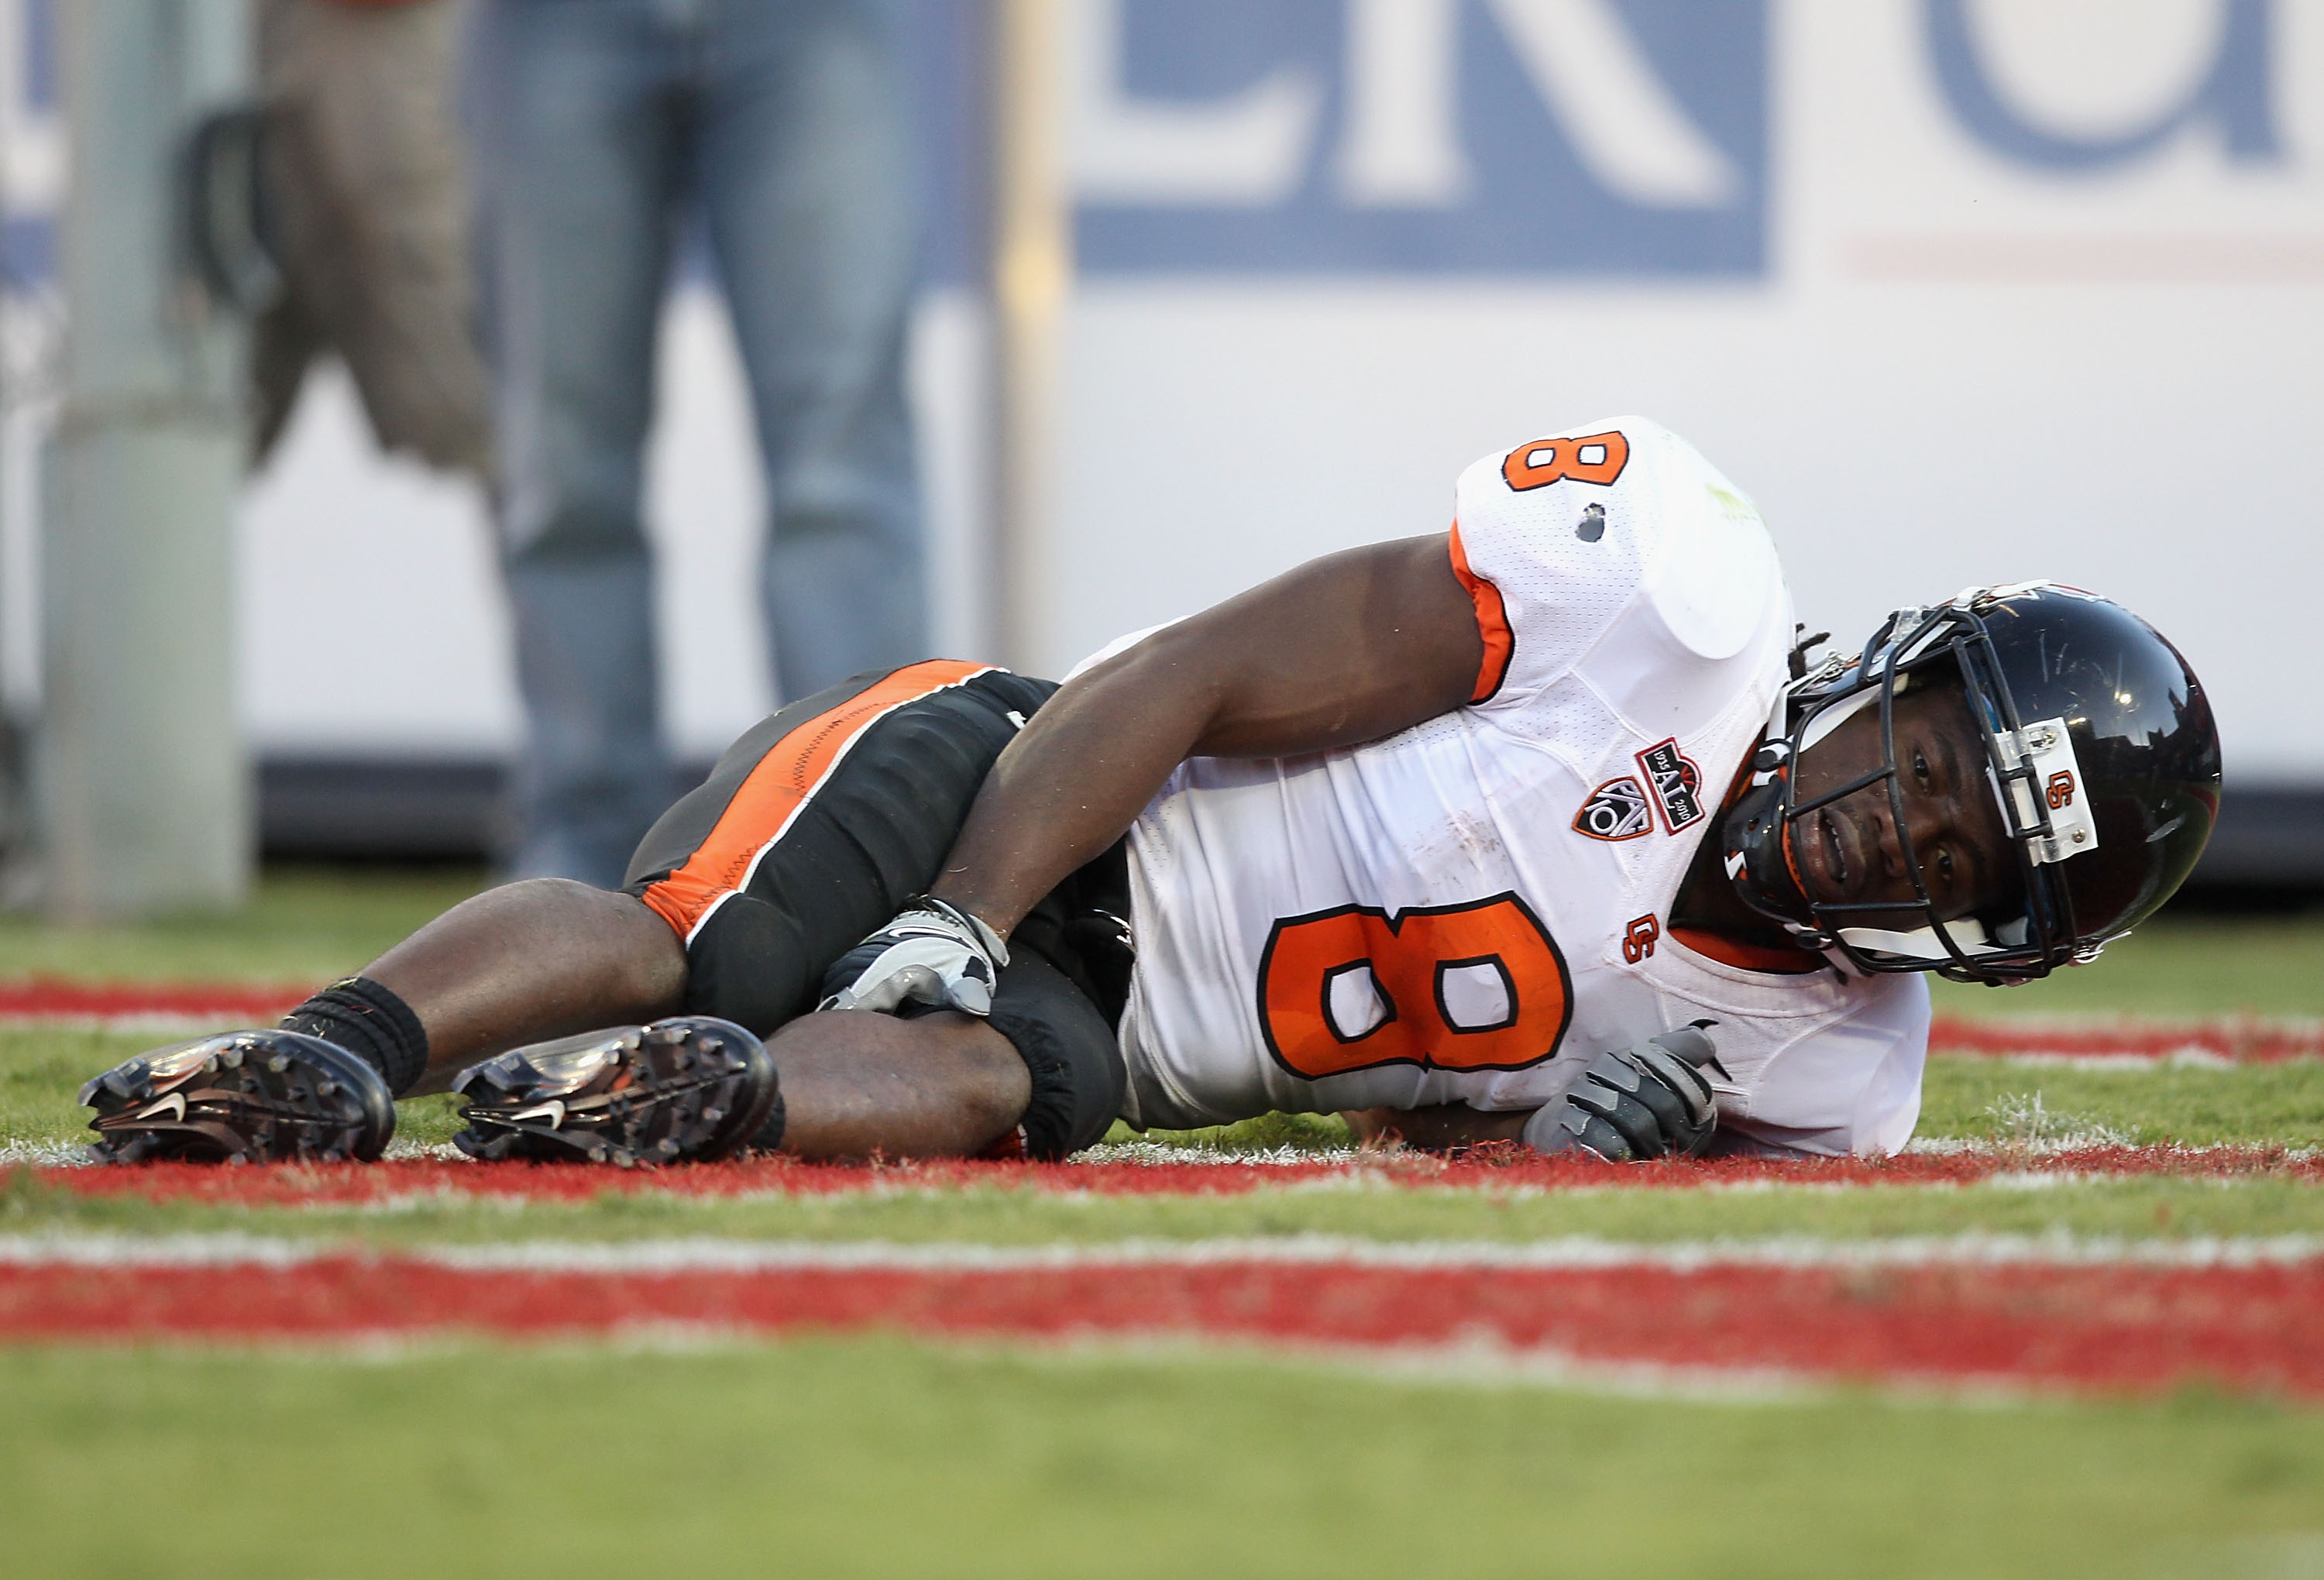 TUCSON, AZ - OCTOBER 09:  Wide receiver James Rodgers #8 of the Oregon State Beavers lays injured on the field during the college football game against the Arizona Wildcats at Arizona Stadium on October 9, 2010 in Tucson, Arizona. The Beavers defeated the